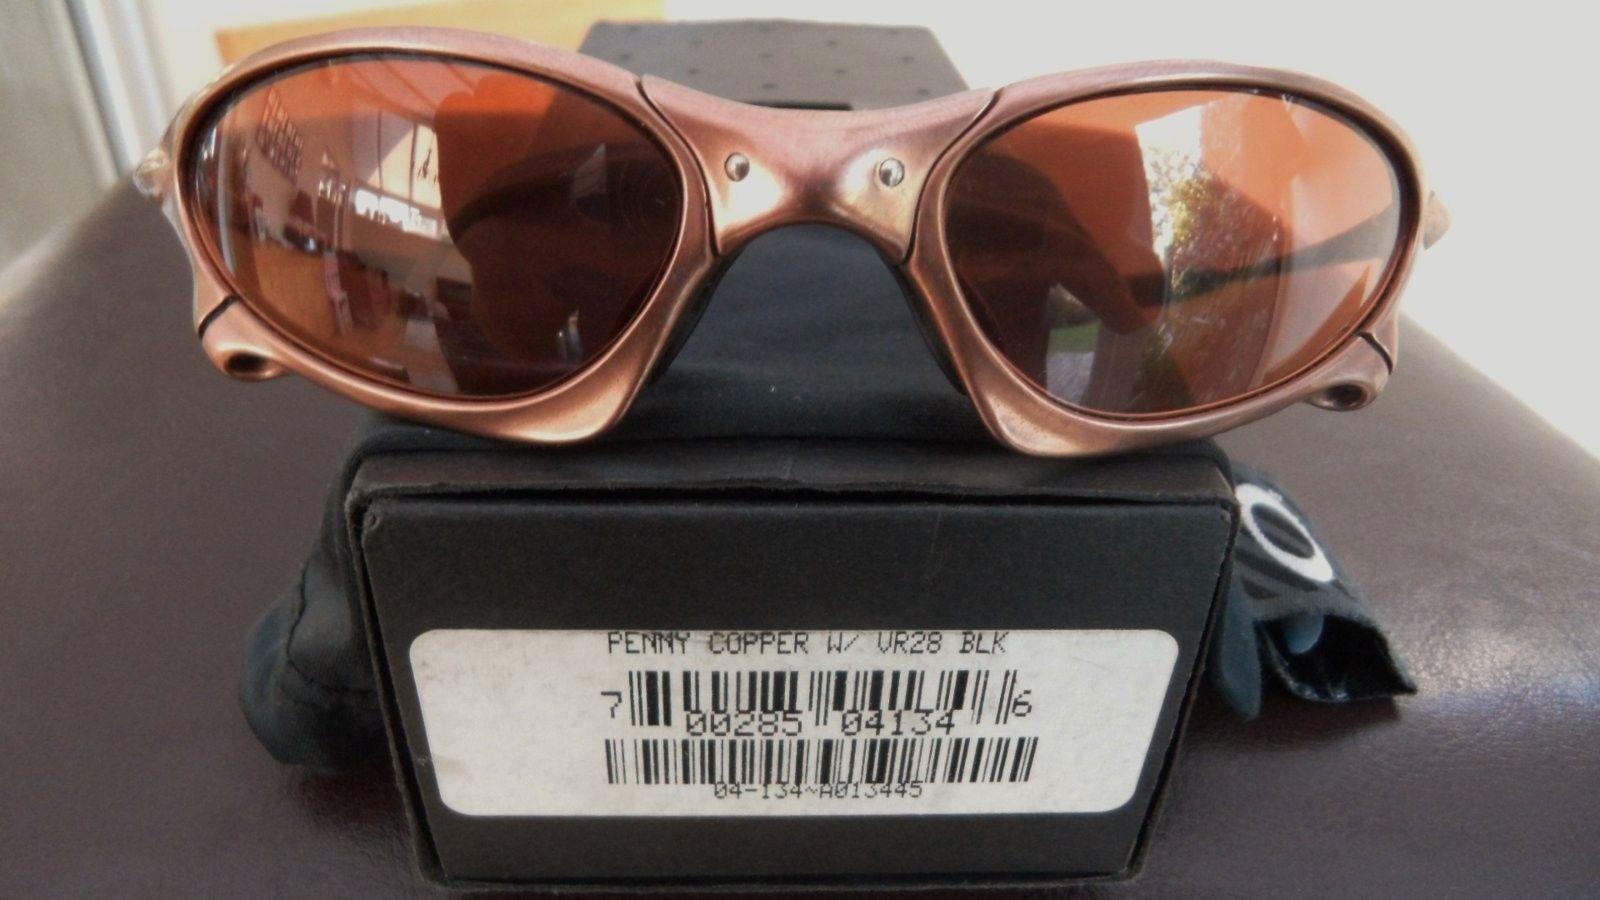 Penny Copper with VR28 lenses. Correctly Labelled Box but wrong serial. - SAM_0005.JPG